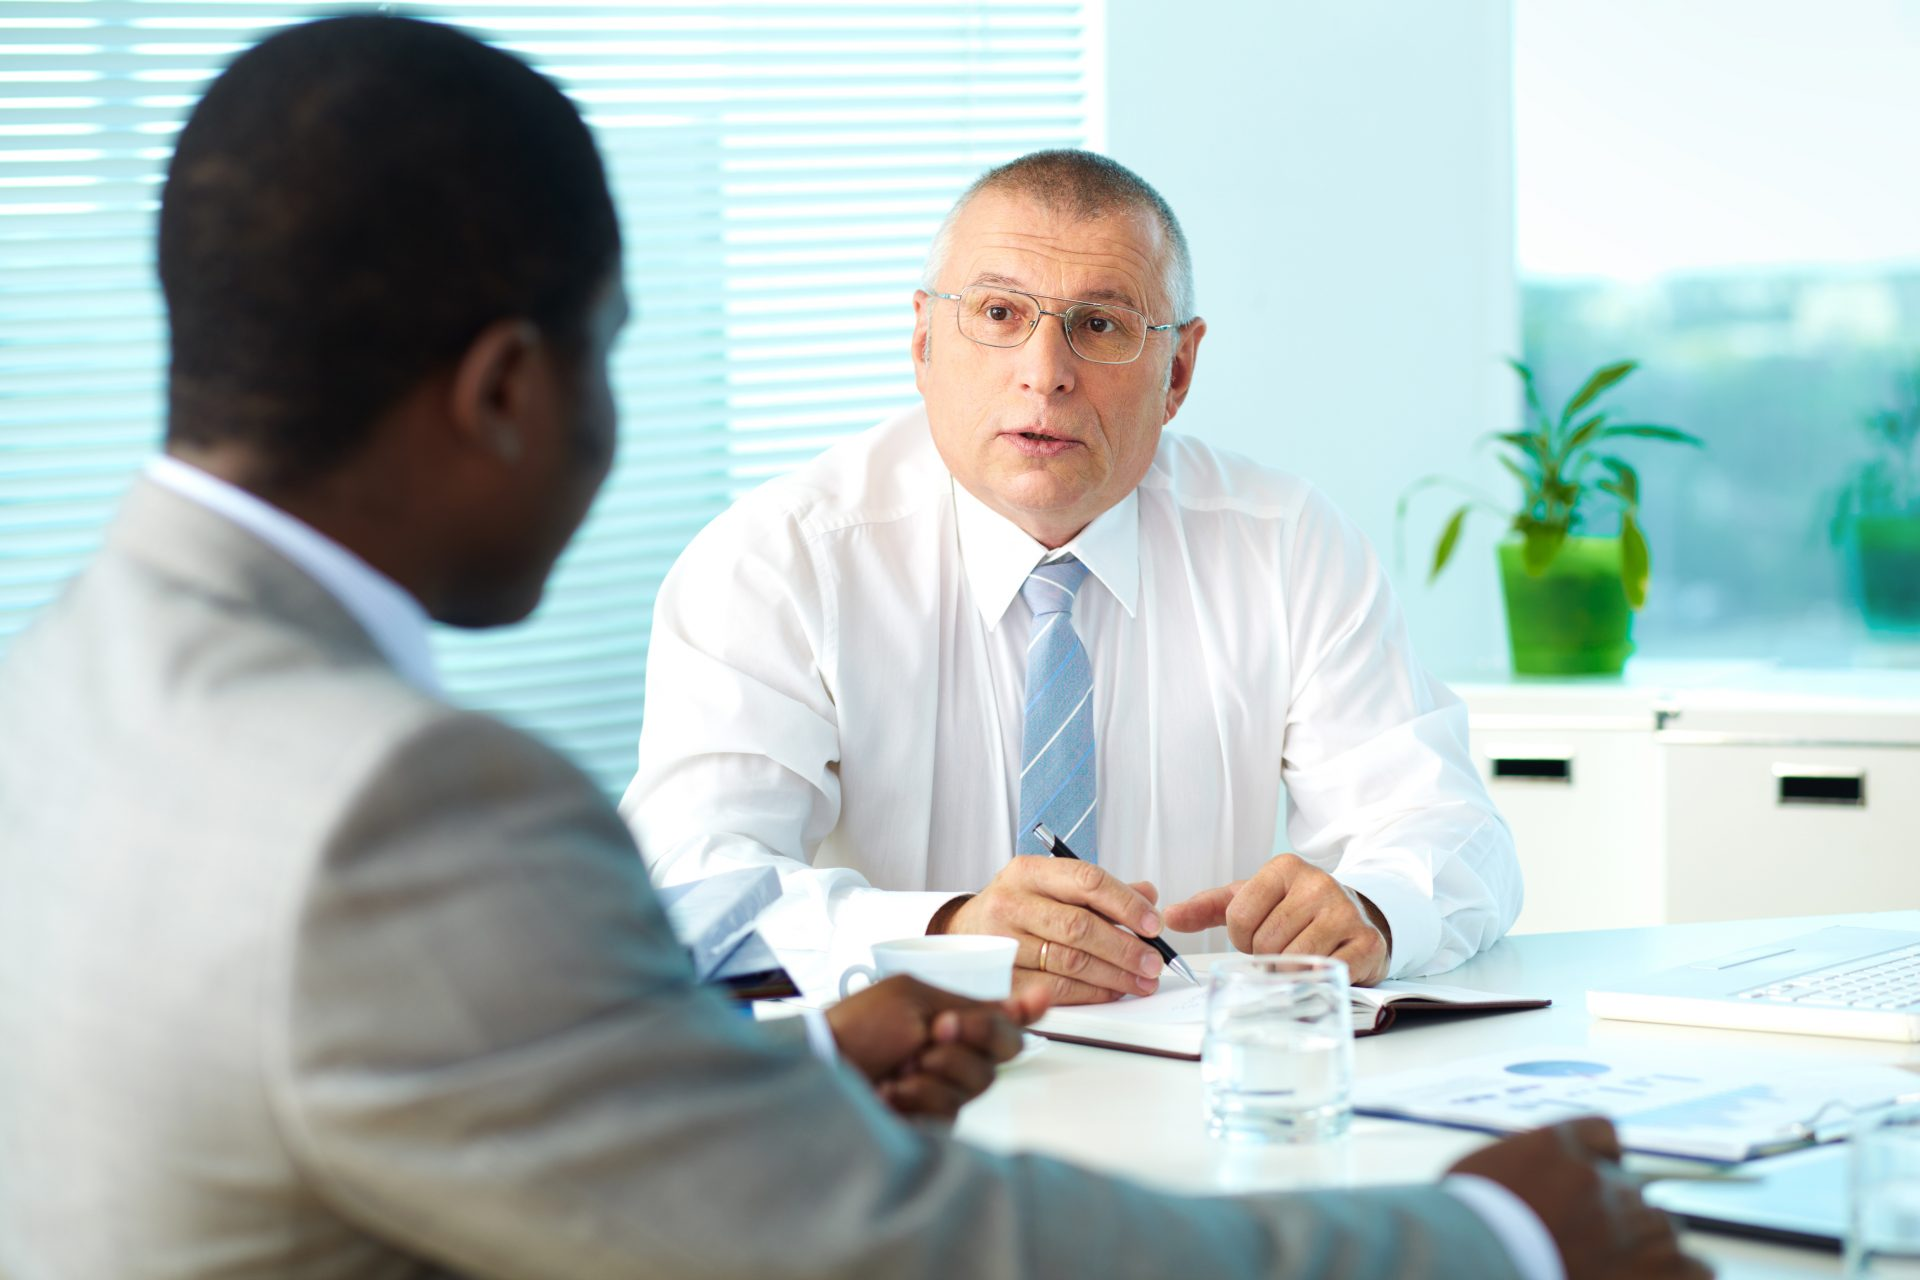 10 Rules For Executives To Follow When Confronted With A Disciplinary Meeting